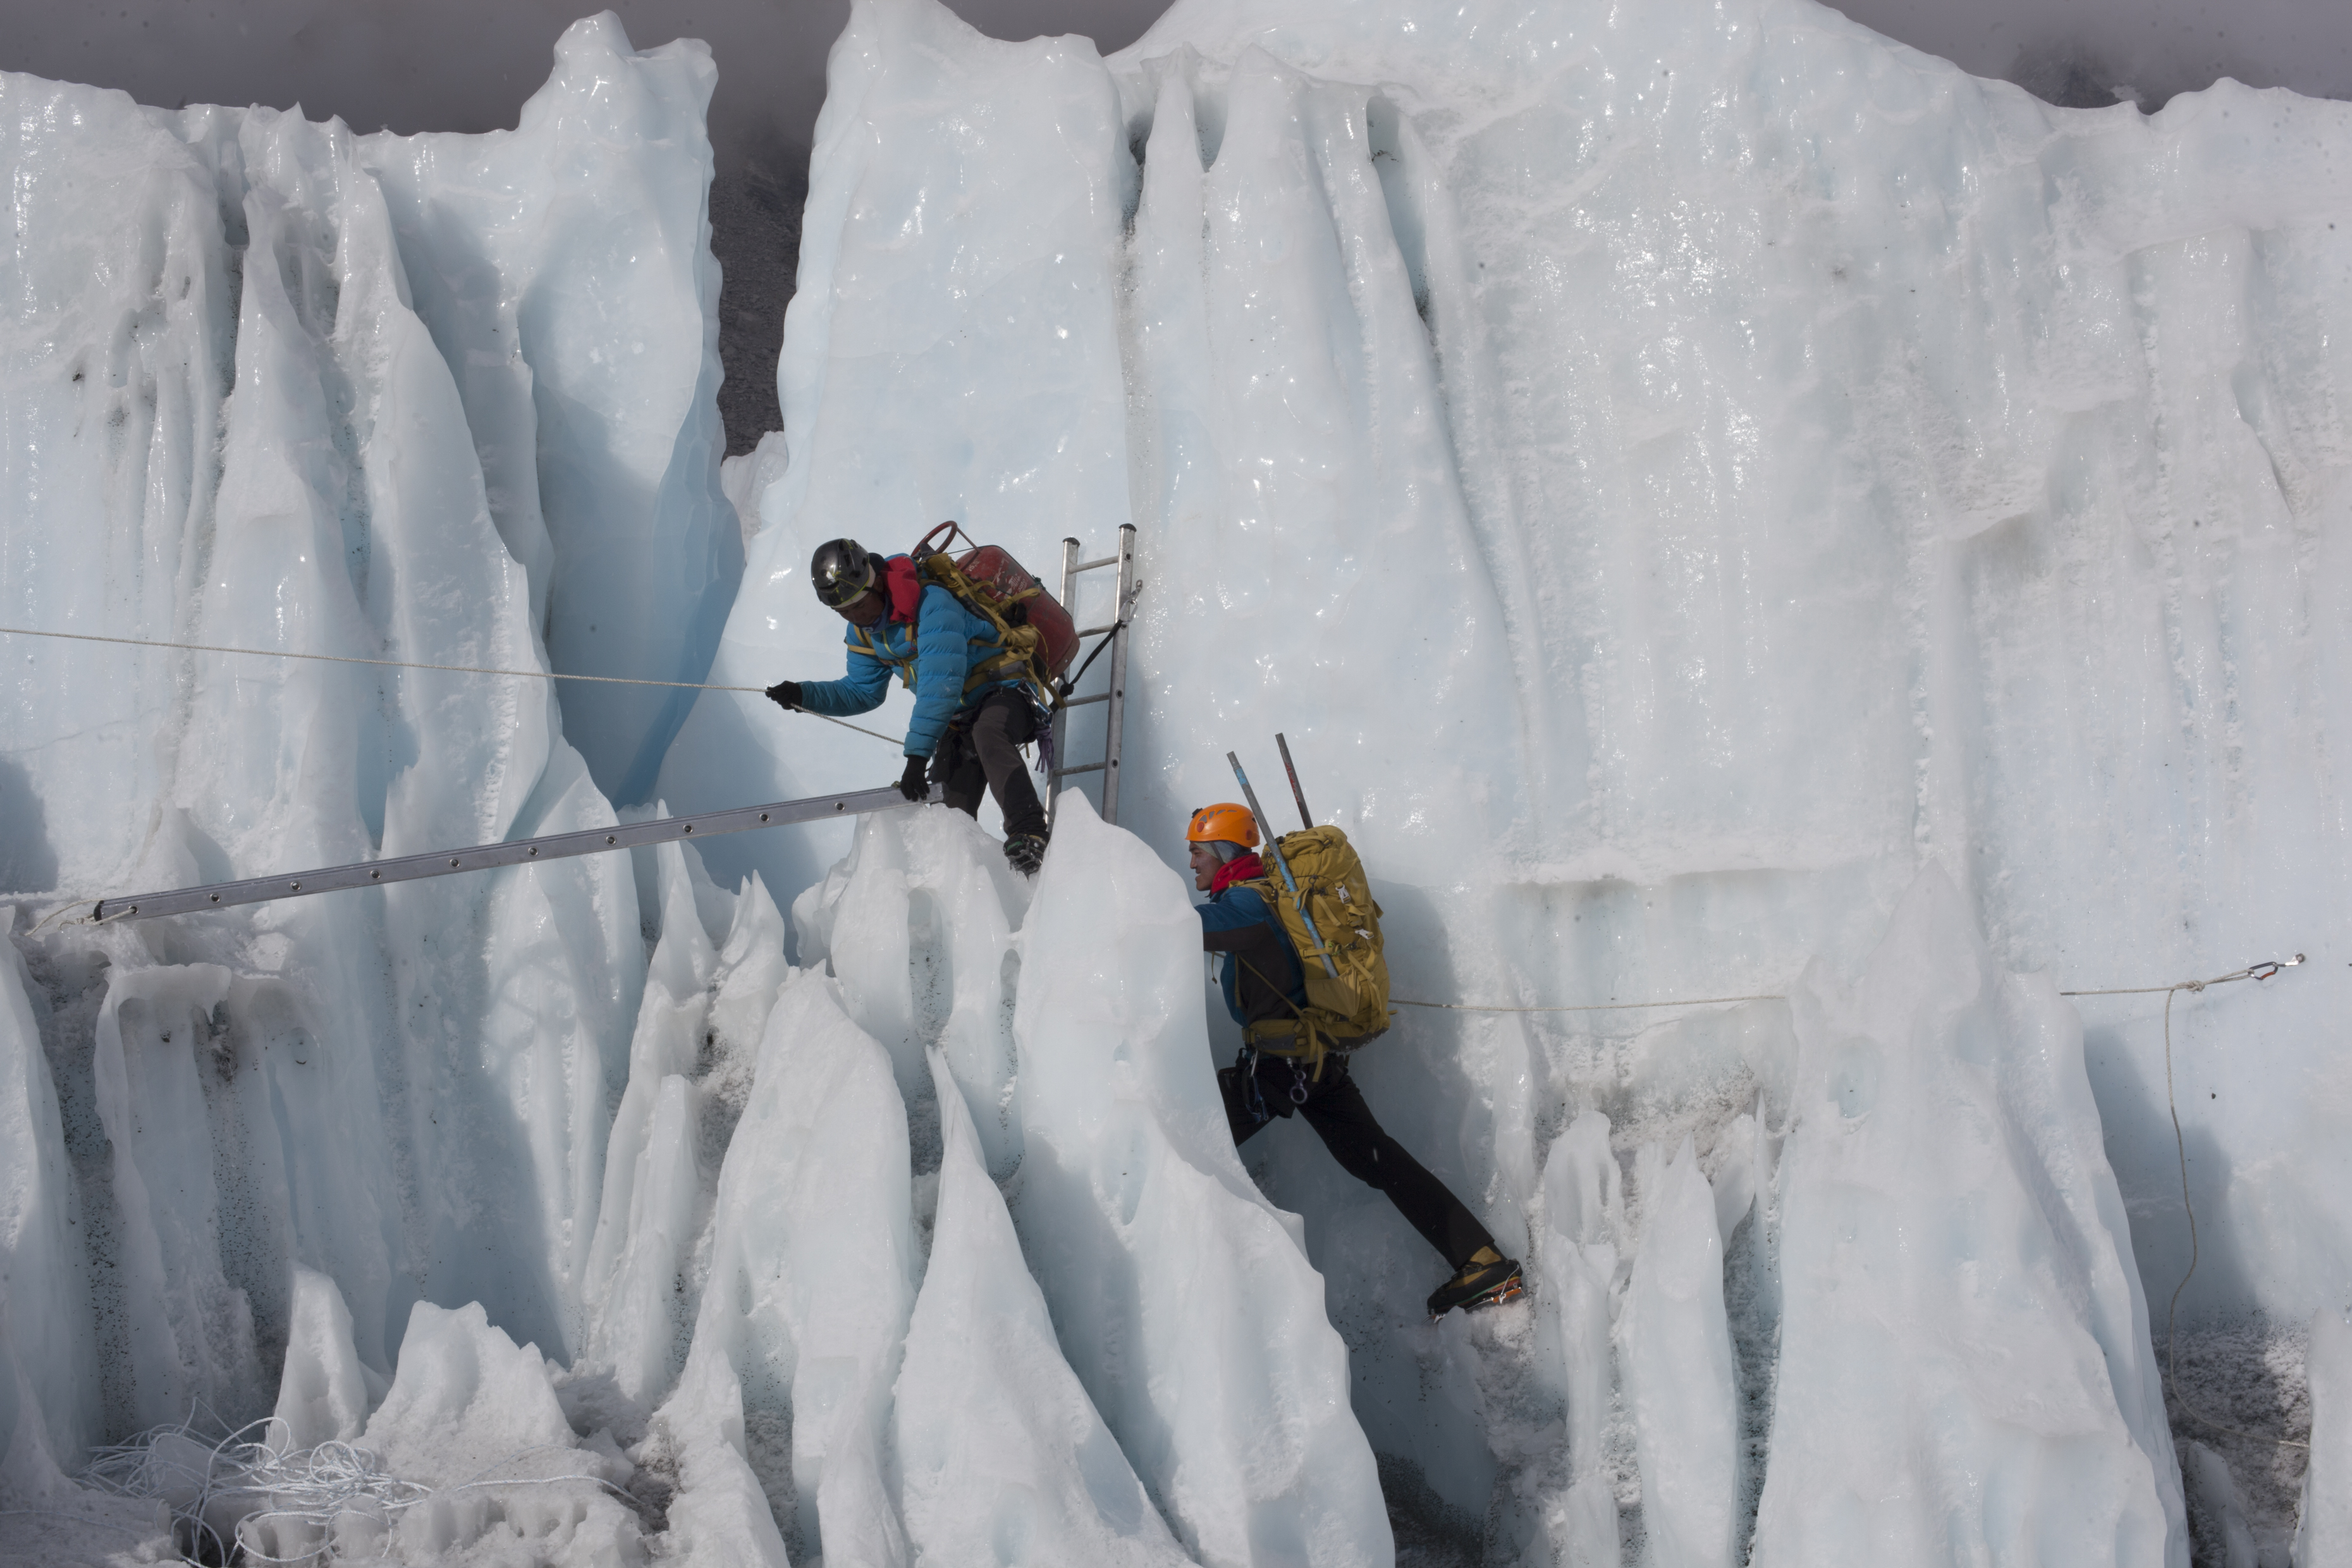 Sherpas training in the treacherous Khumbu Icefall